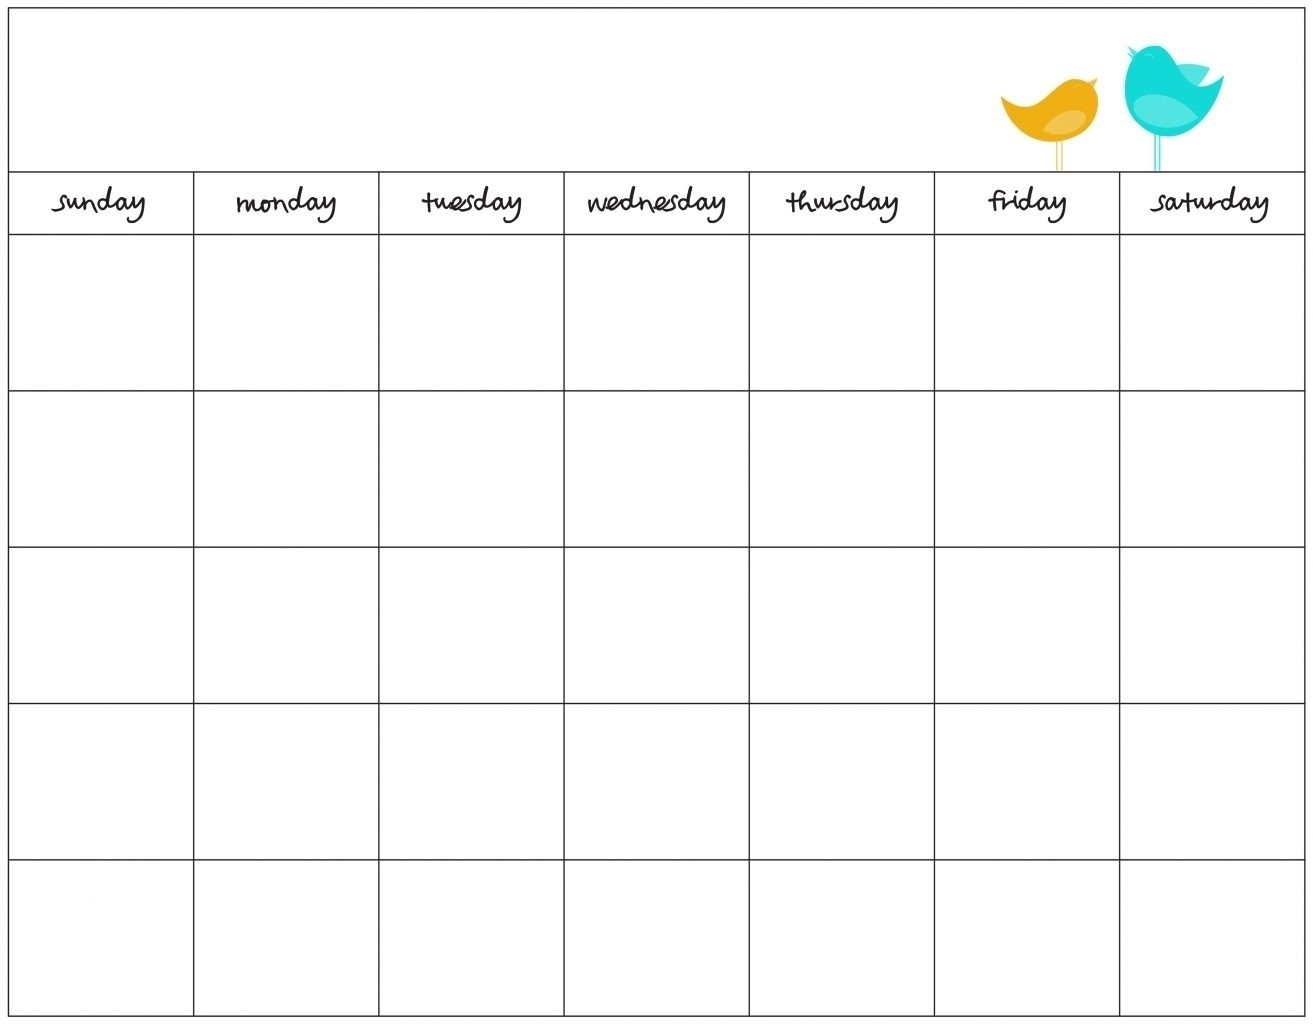 Seven Day Calendar E Week Printable Schedule Grid Es | Smorad with Blank 7 Day Week Calendar